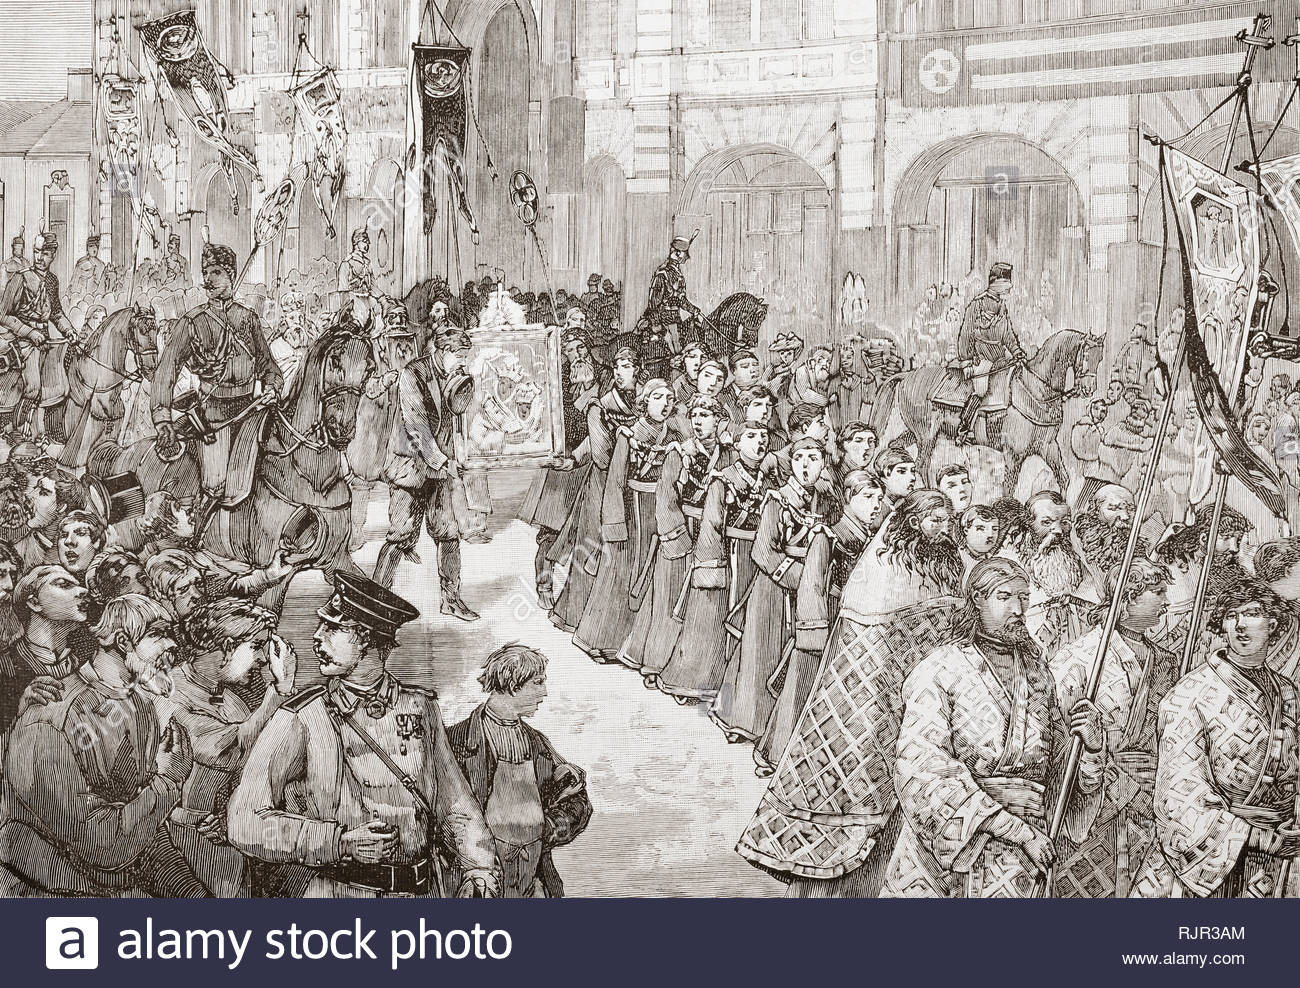 The fifth cholera pandemic, 1881-1896. A religious procession in Saint Petersburg, Russia in 1892 to pray for the disappearance of Cholera.  From La Ilustracion Espanola y Americana, published 1892. - Stock Image